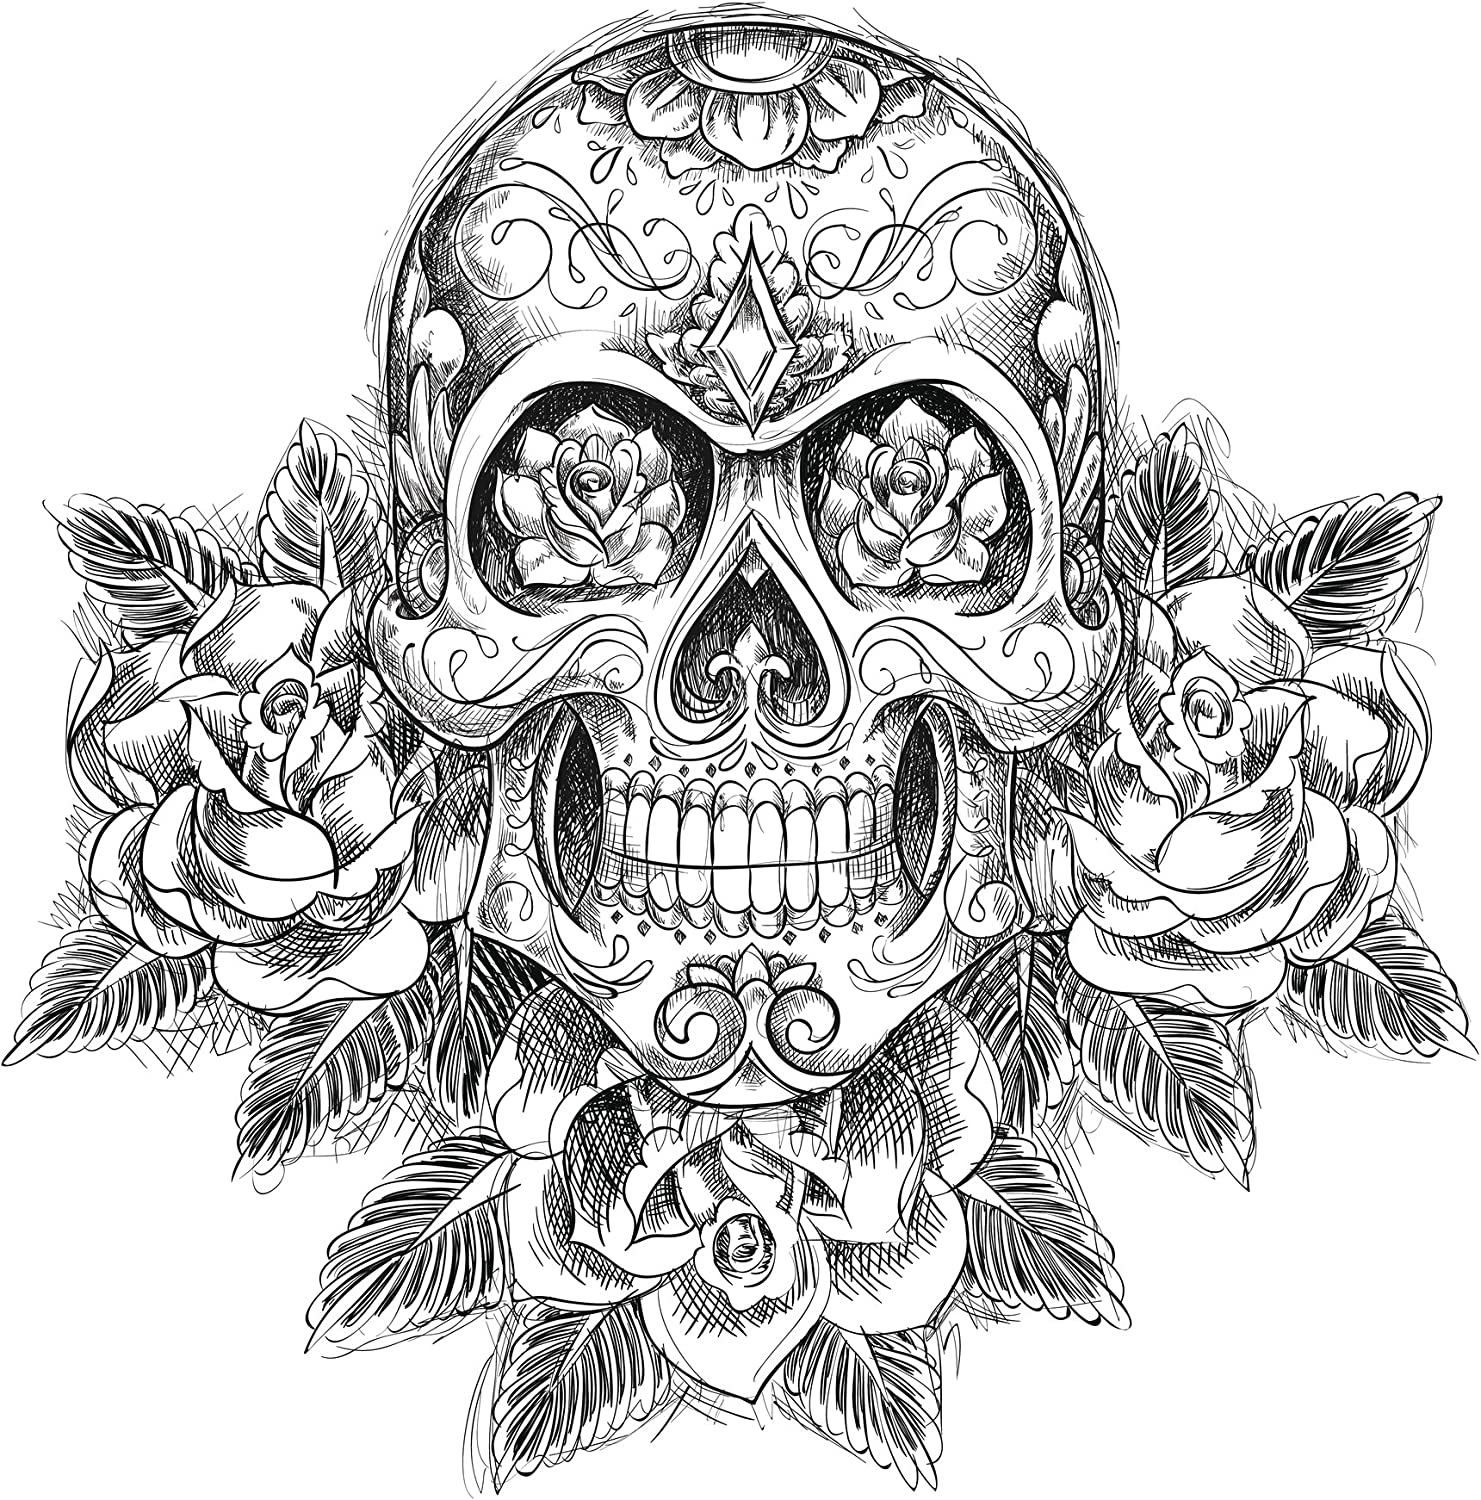 "6/"" x 4/"" Roses N/' Skull Vinyl Decal Stickers"